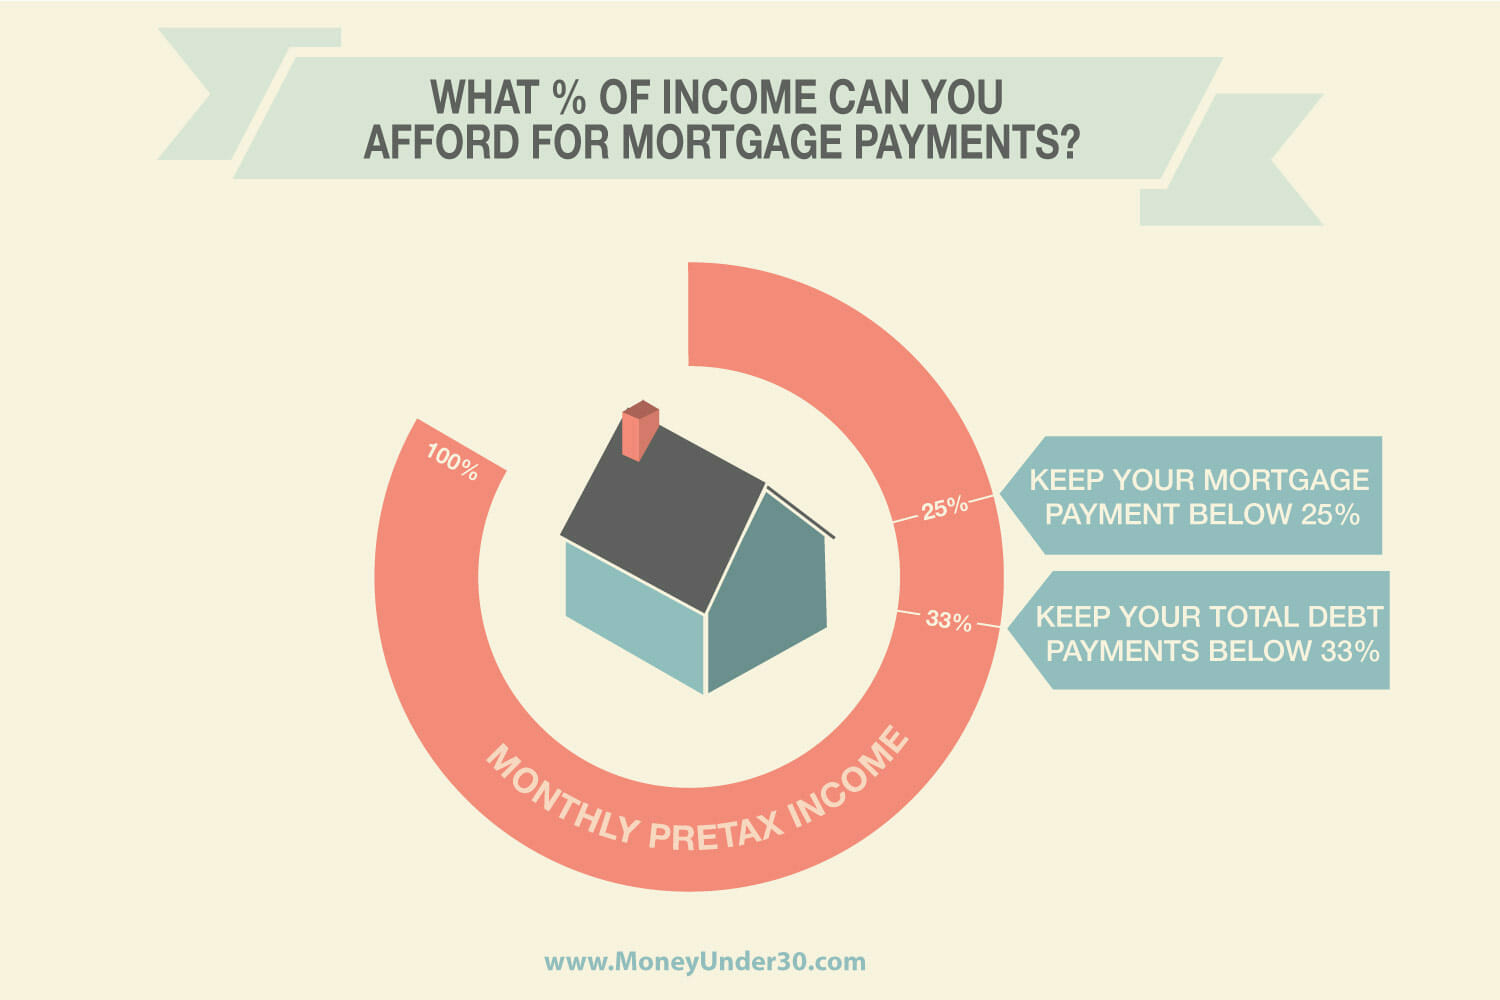 What percentage of income can you afford for mortgage payments